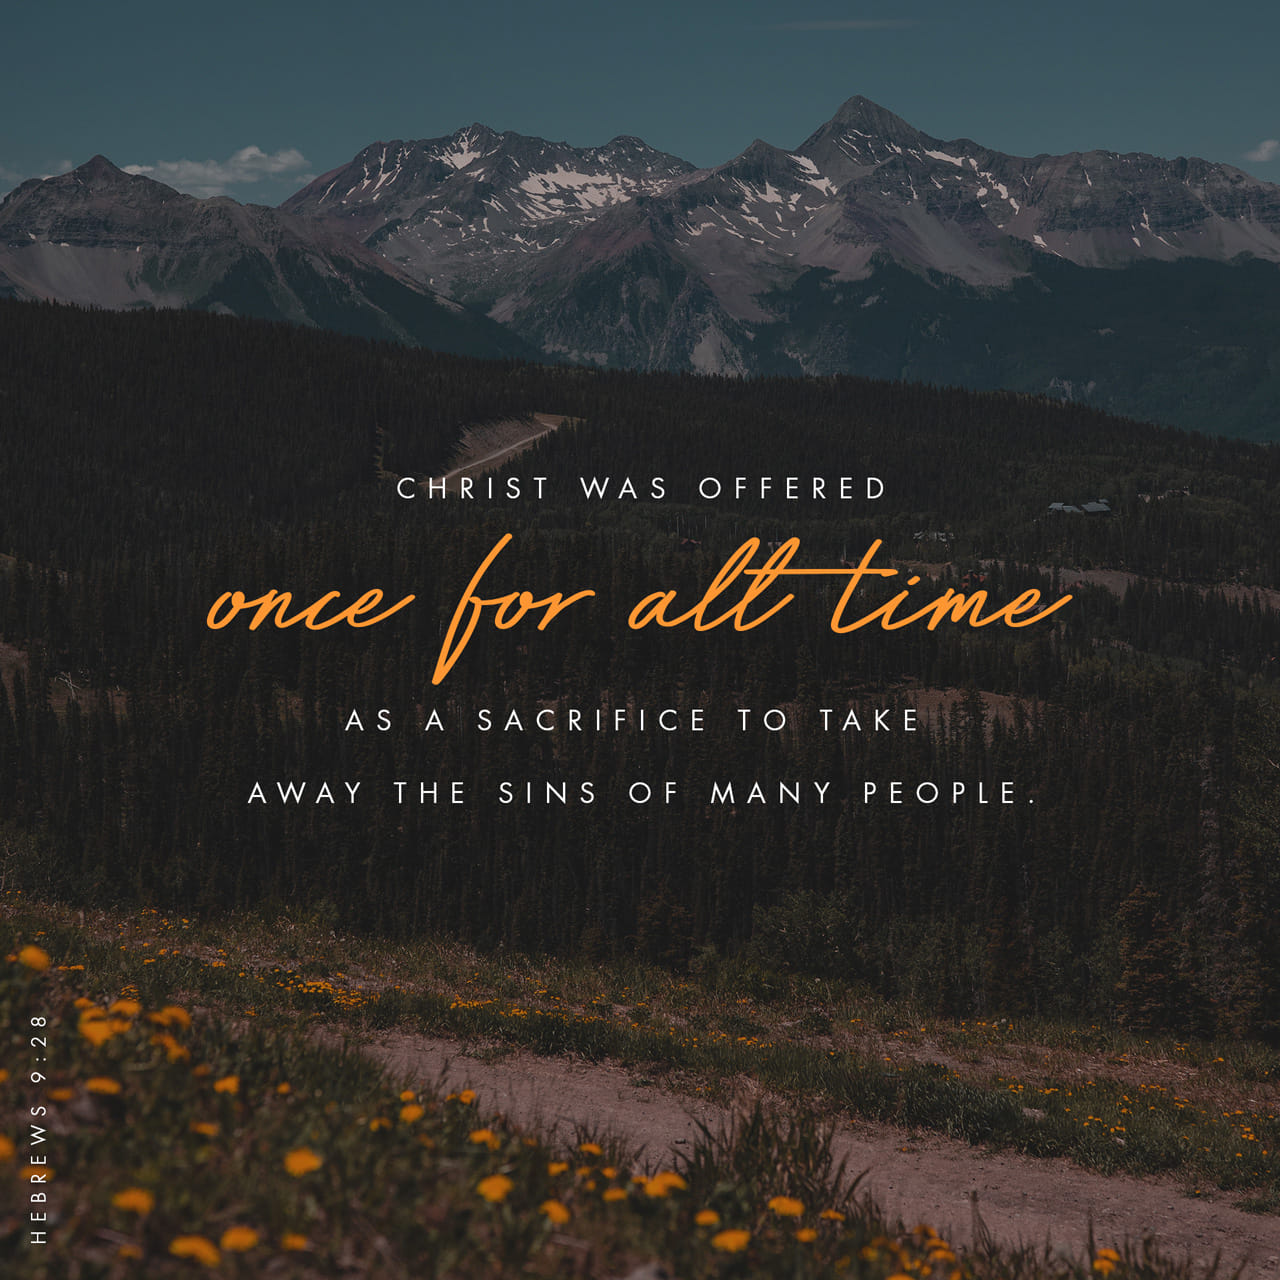 Hebrews 9:28 Even so it is that Christ, having been offered to take upon Himself and bear as a burden the sins of many once and once for all, will appear a second time, not to carry any burden of sin nor to deal w